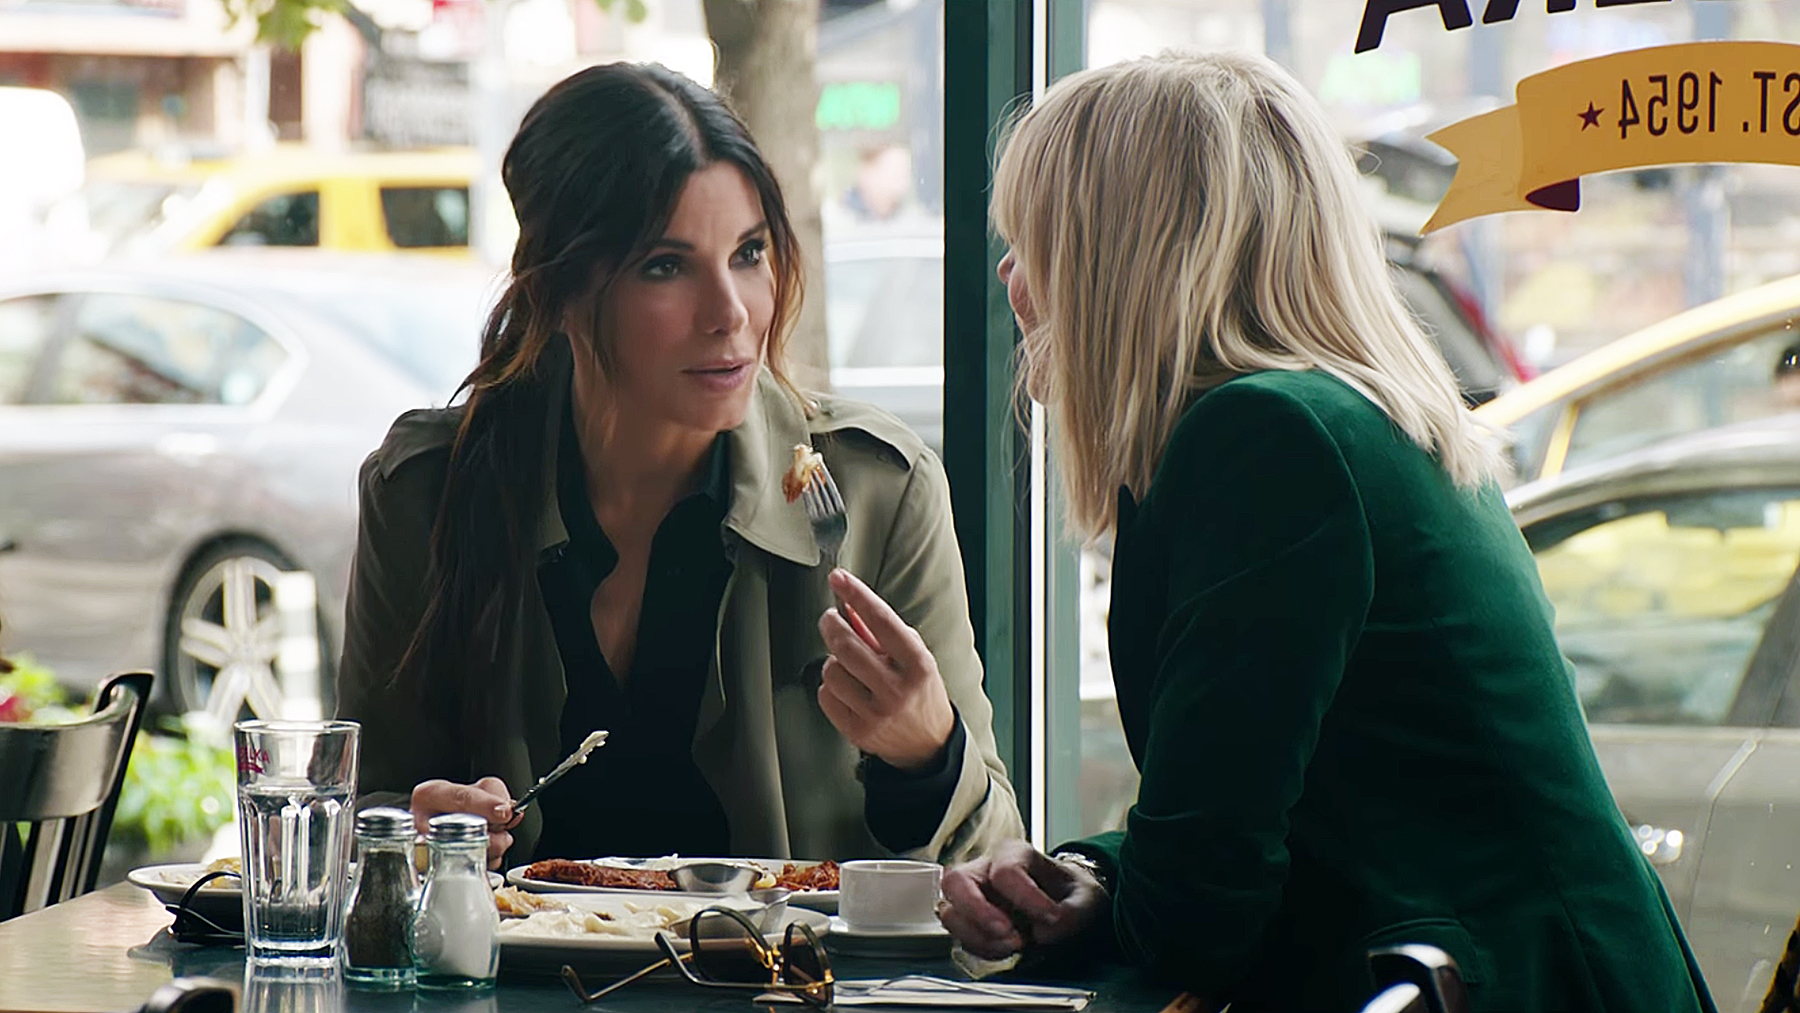 Image result for sandra bullock in oceans 8